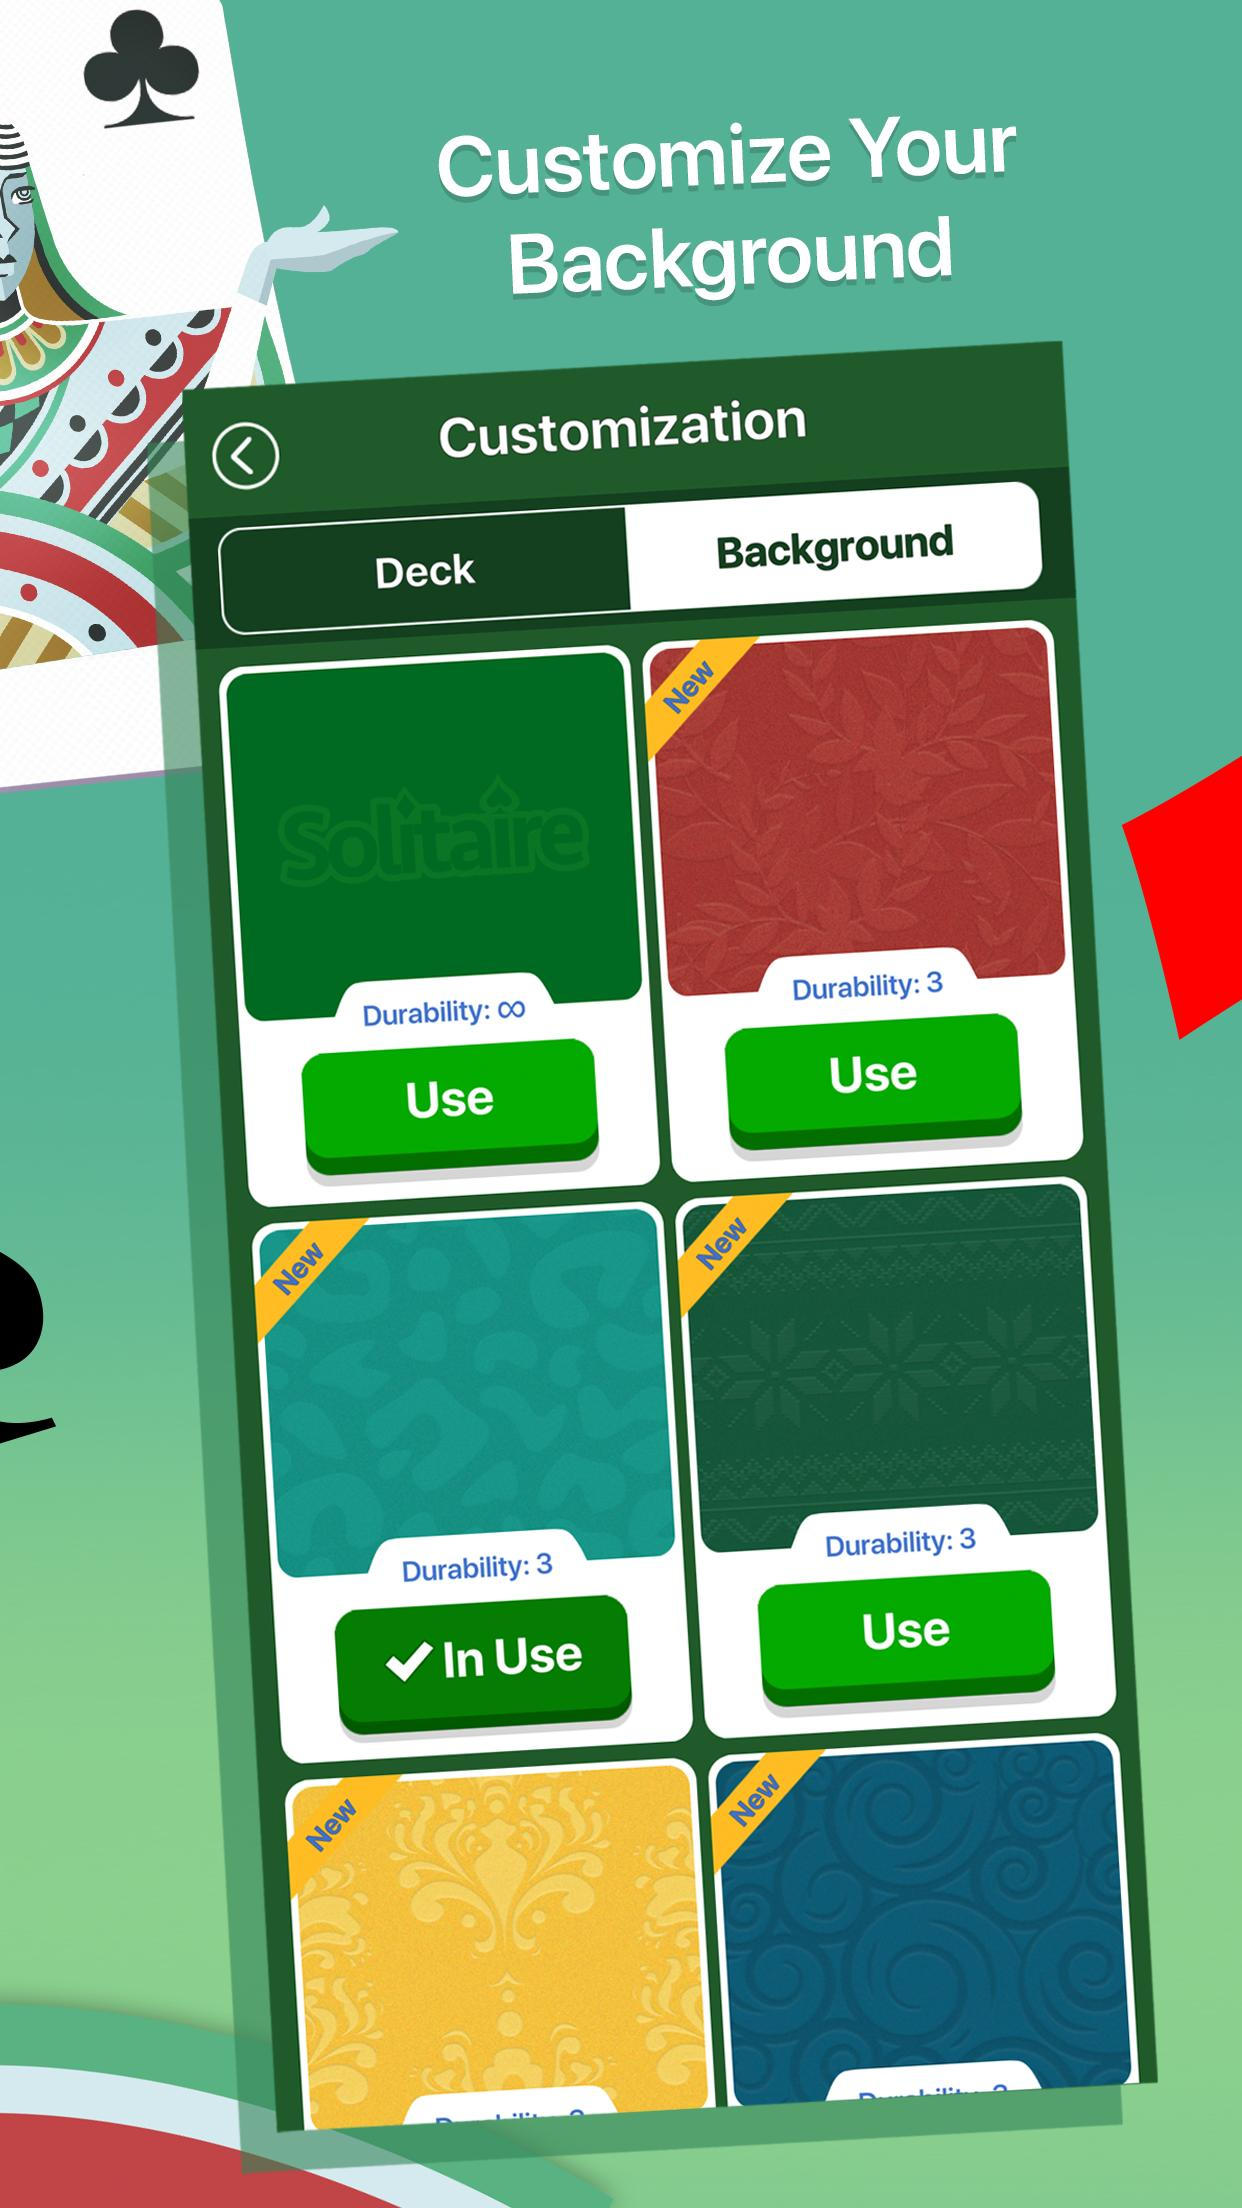 Solitaire 8.4.1 Screenshot 12